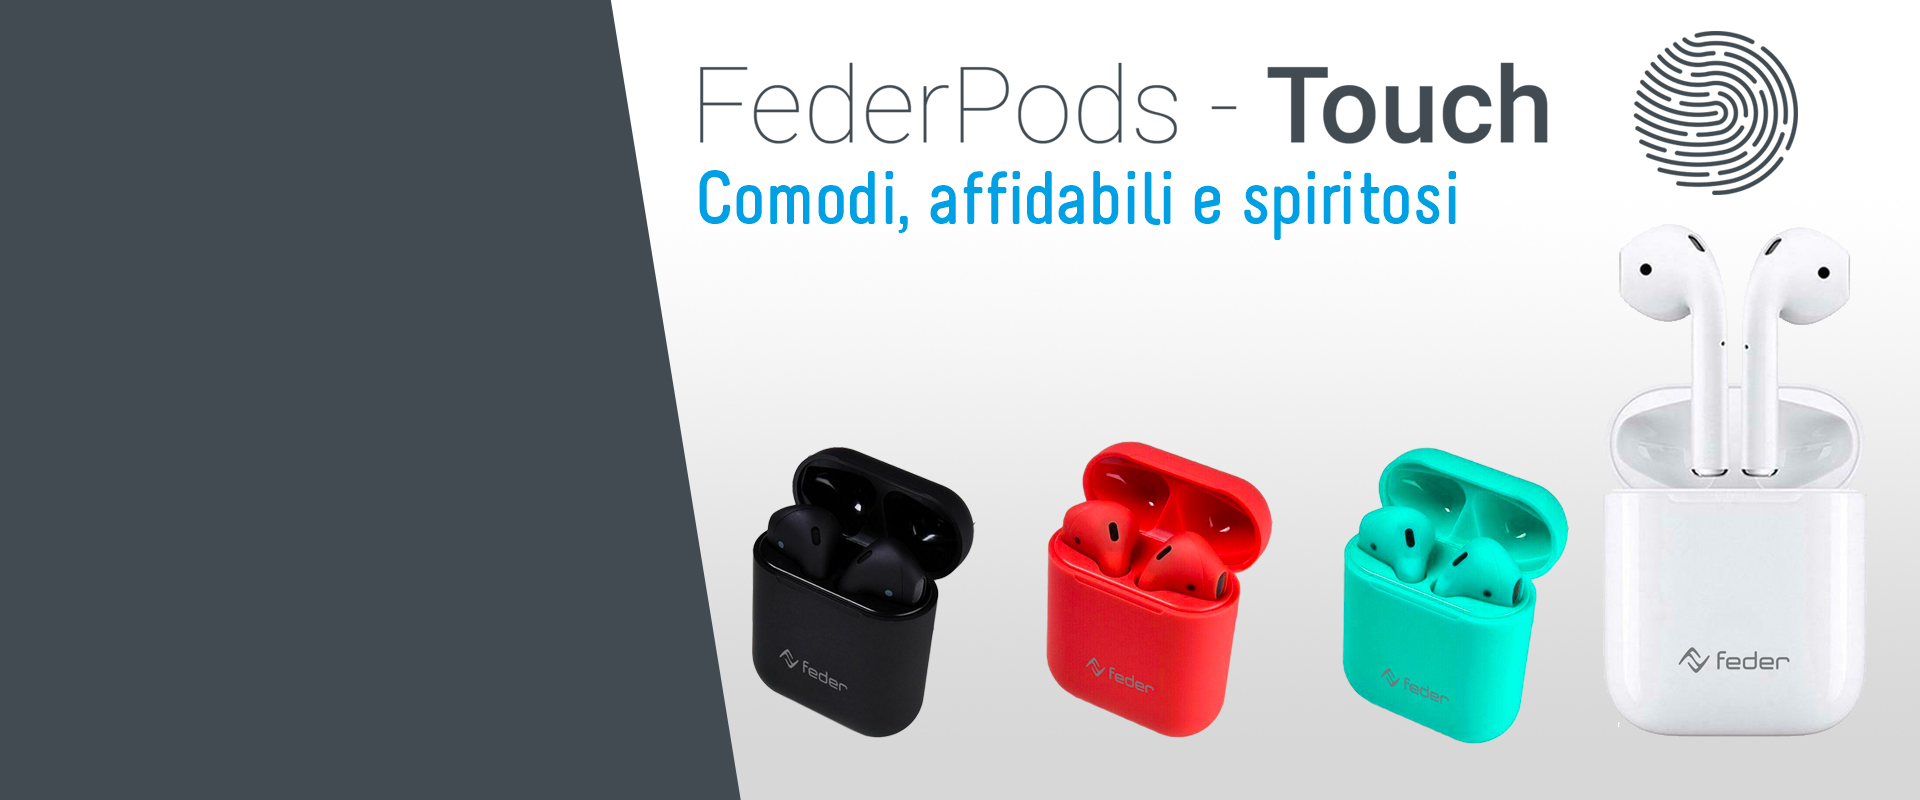 FederPods